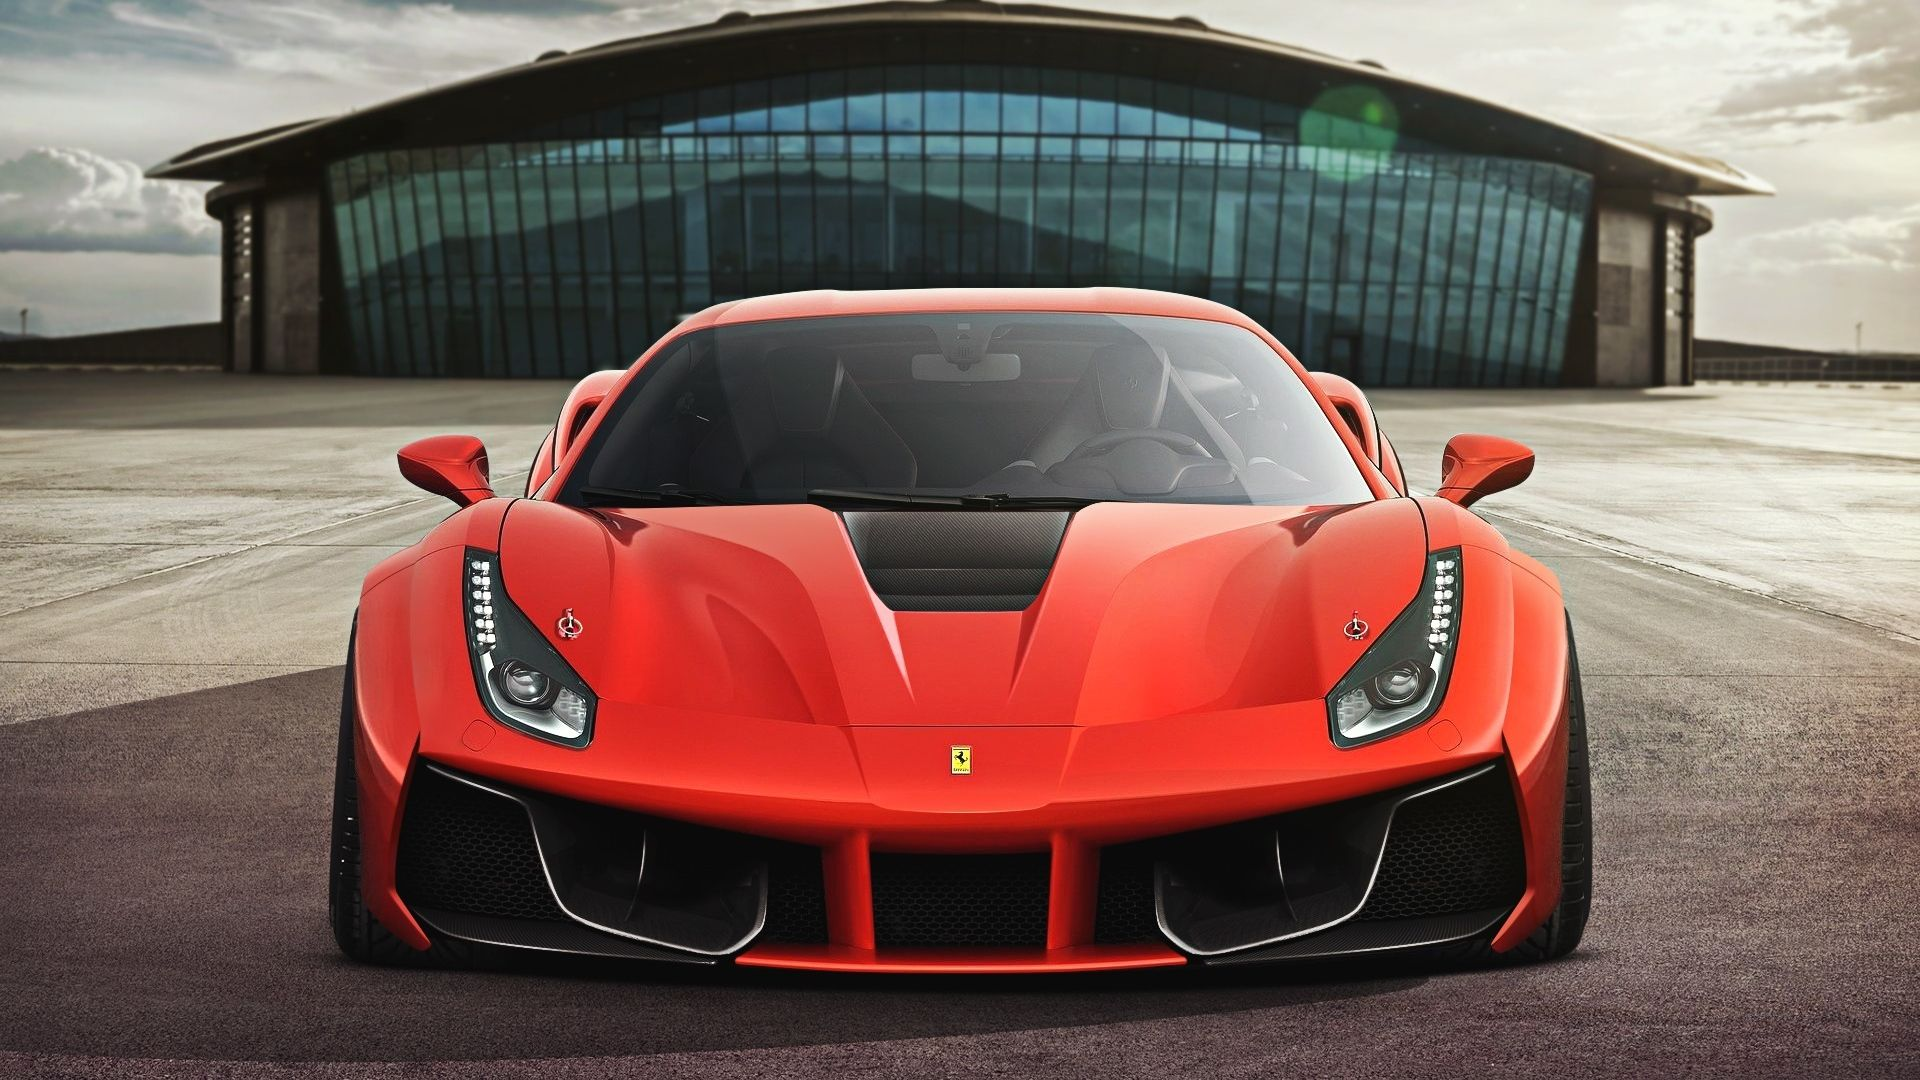 cool ferrari 488 wallpaper desktop - Ferrari 488 Iphone Wallpaper